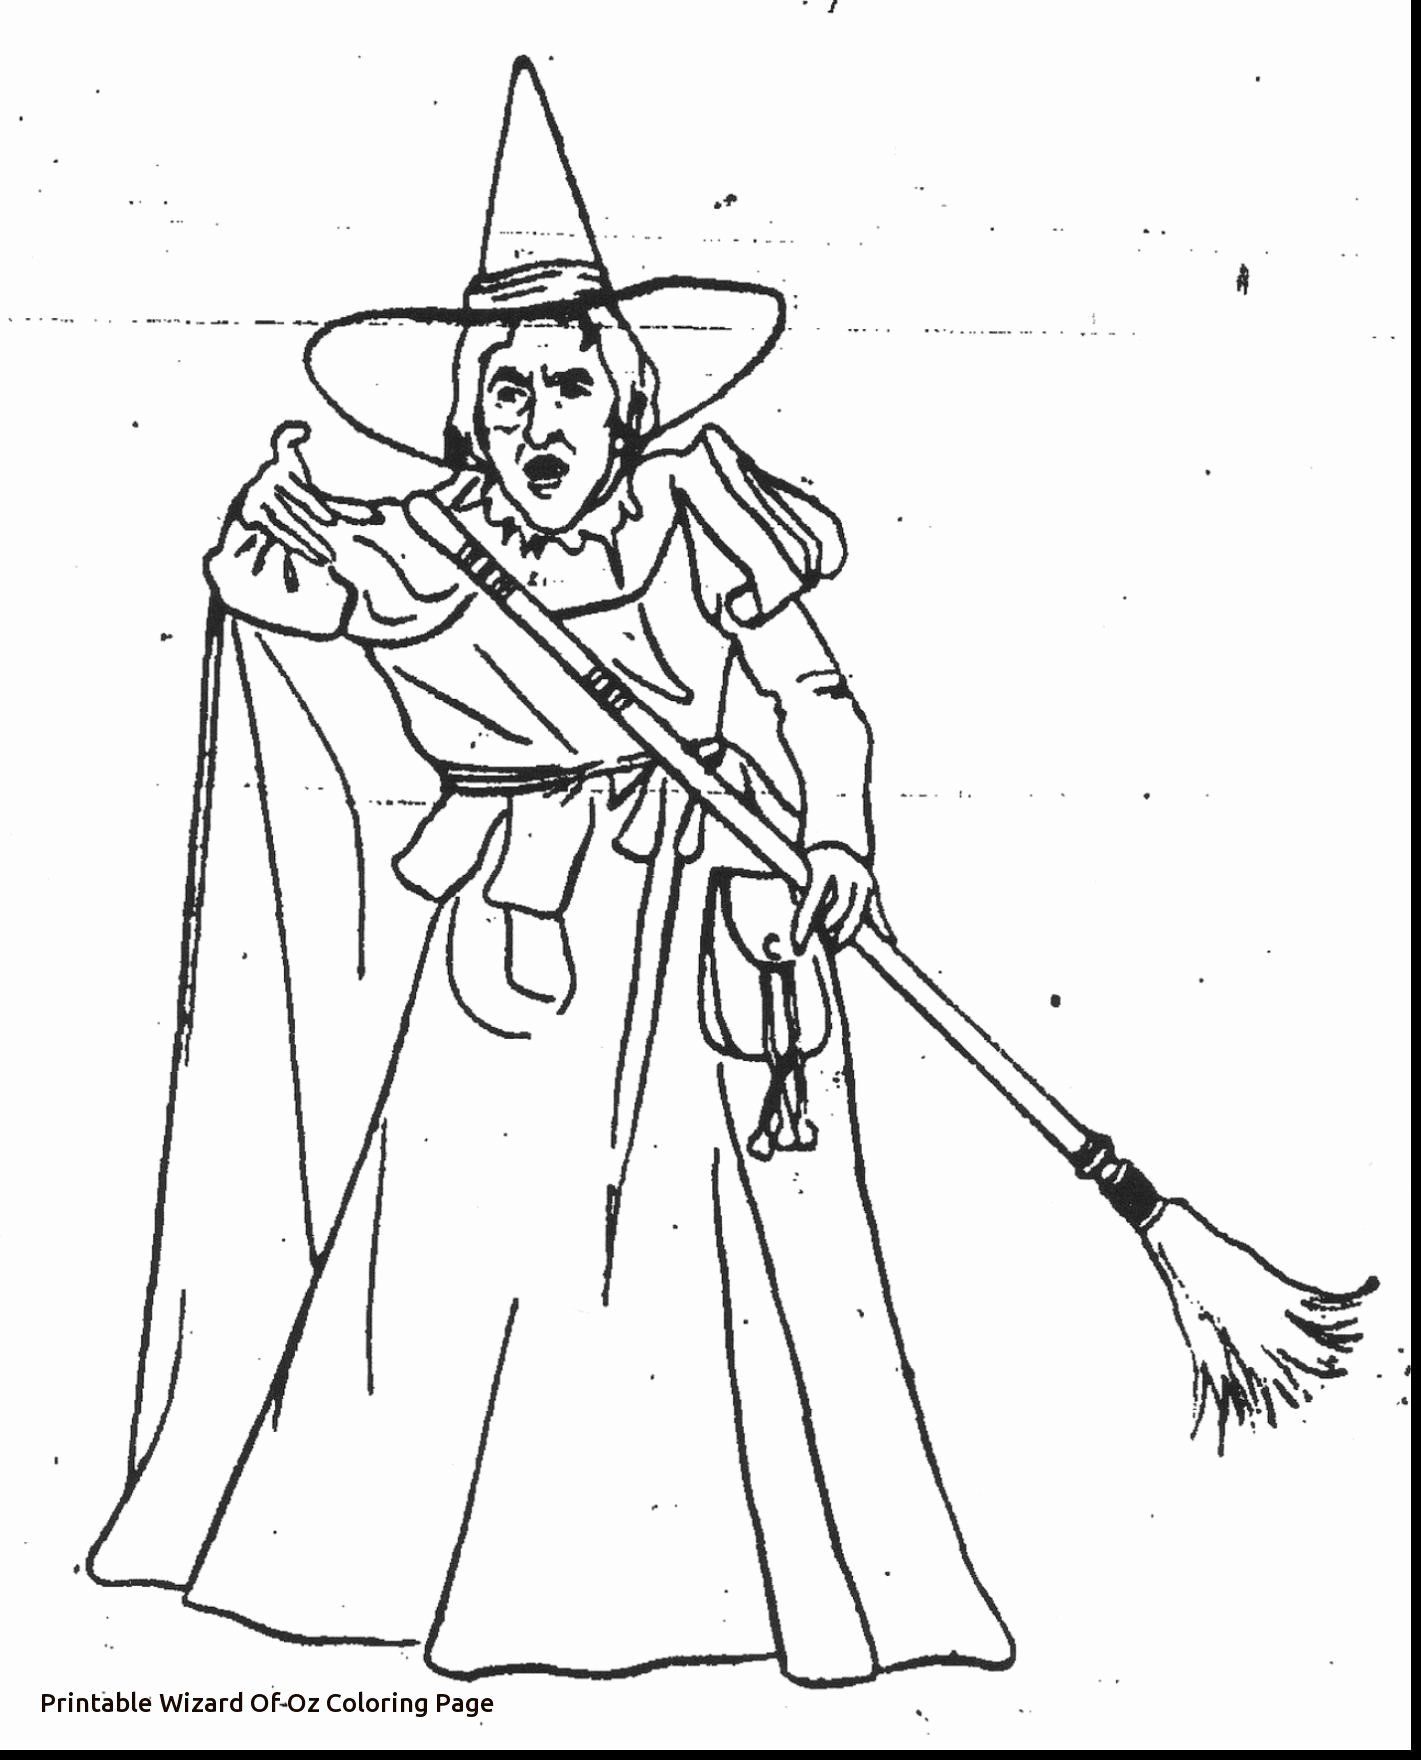 Wizard Of Oz Coloring Book Luxury Wizard Oz Coloring Pages Emerald City At Getdrawings In 2020 Witch Coloring Pages Wizard Of Oz Color Coloring Books